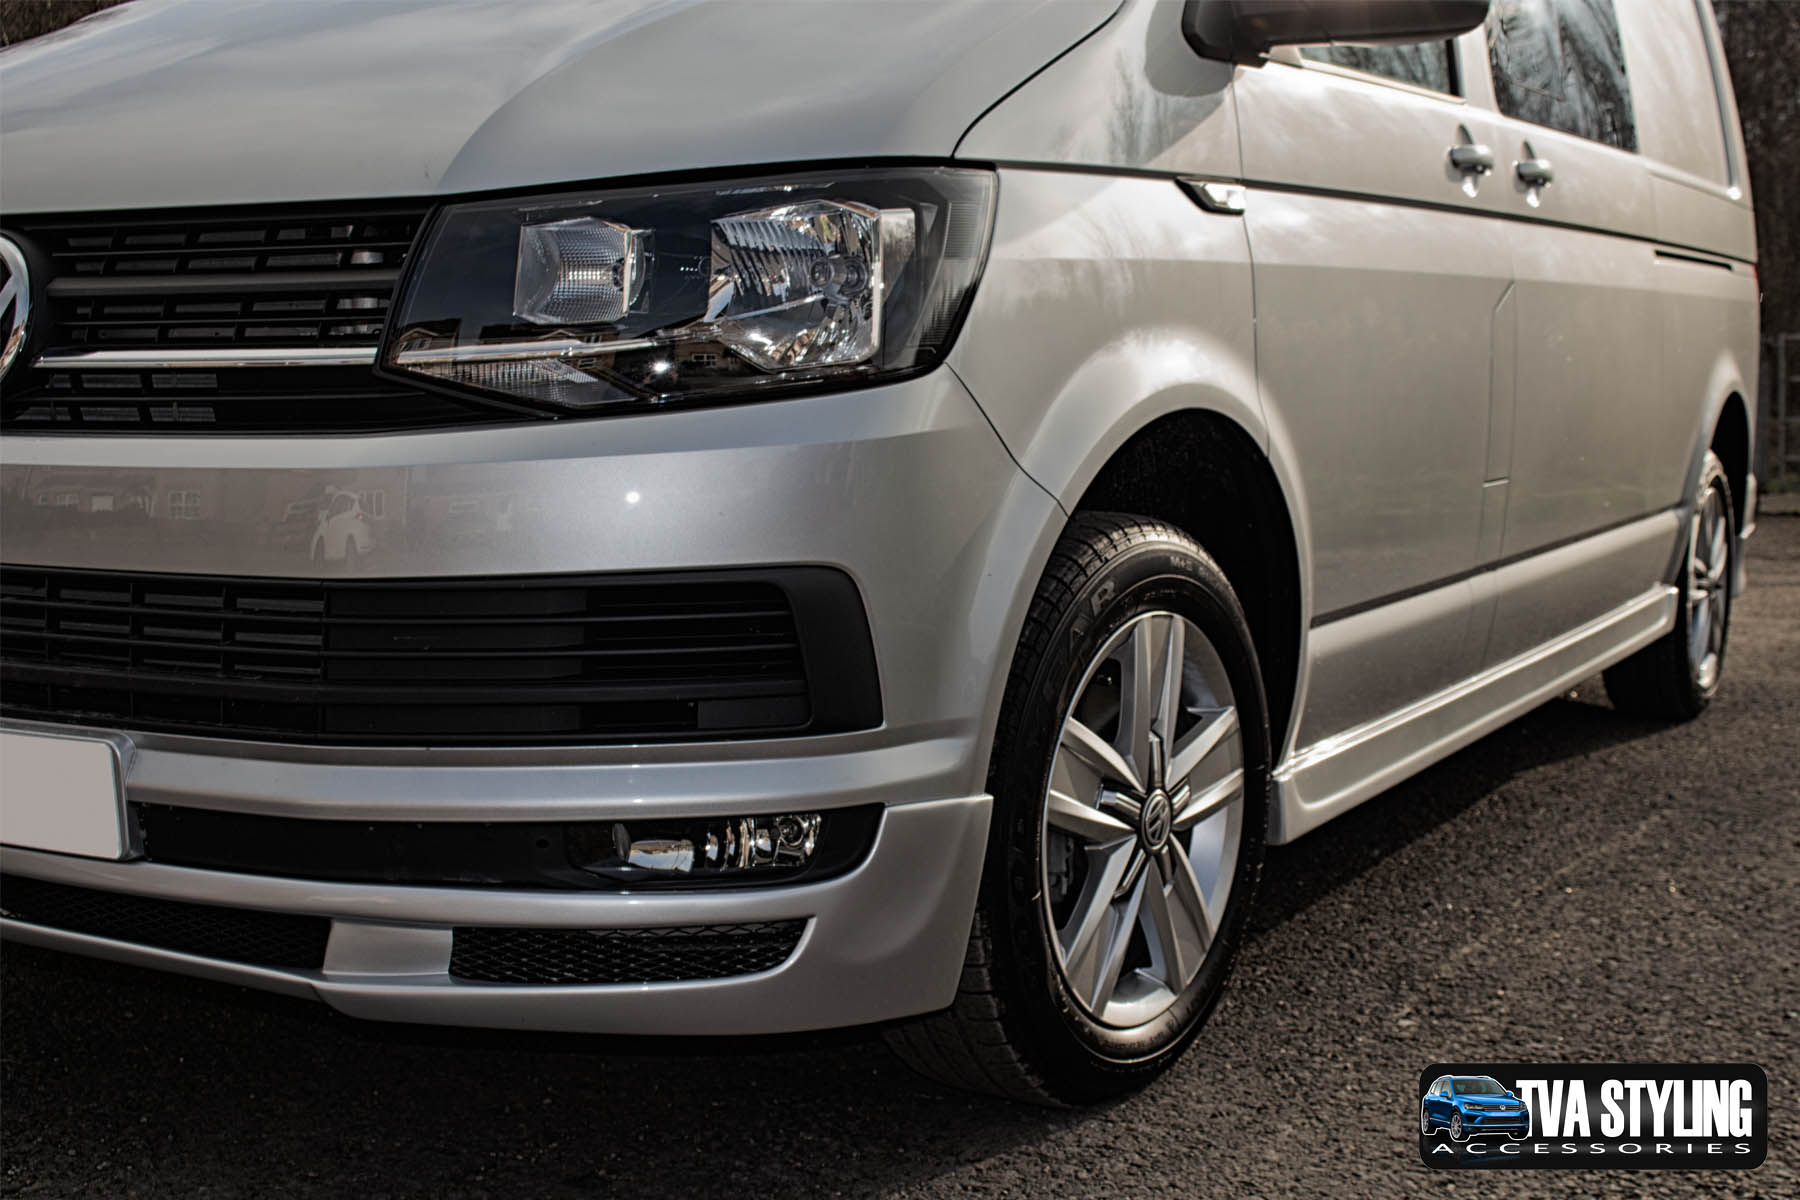 VW T6 Body Kit